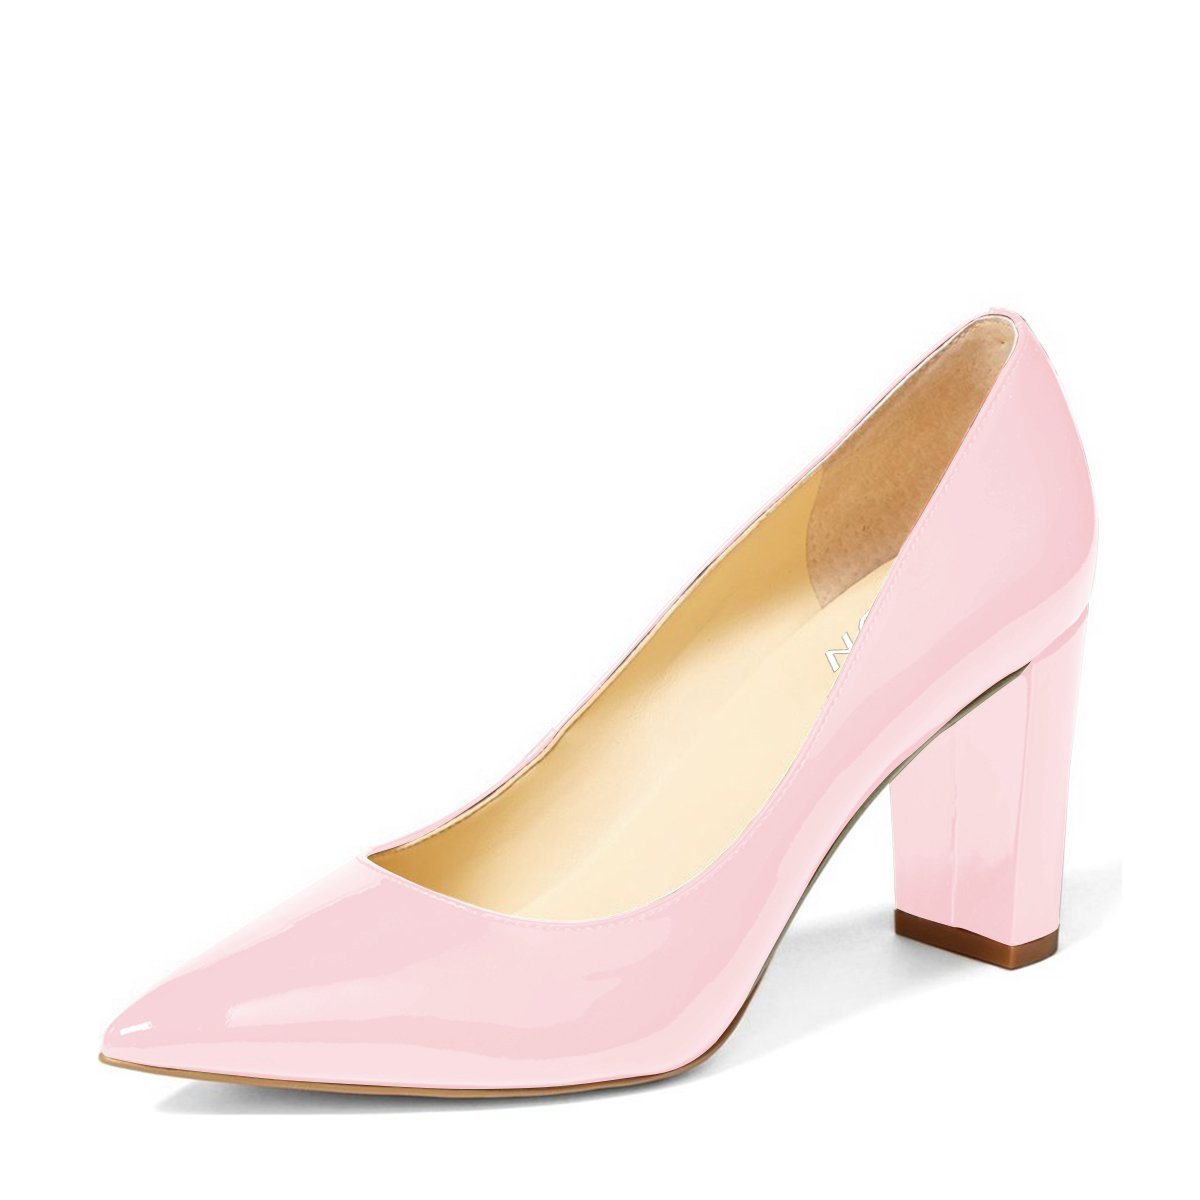 YDN Women's Classic Pointy Toe OL Pumps Slip-On Patent Leather Block Heel Dress Shoes B01MRP39WC 8 B(M) US|Pink